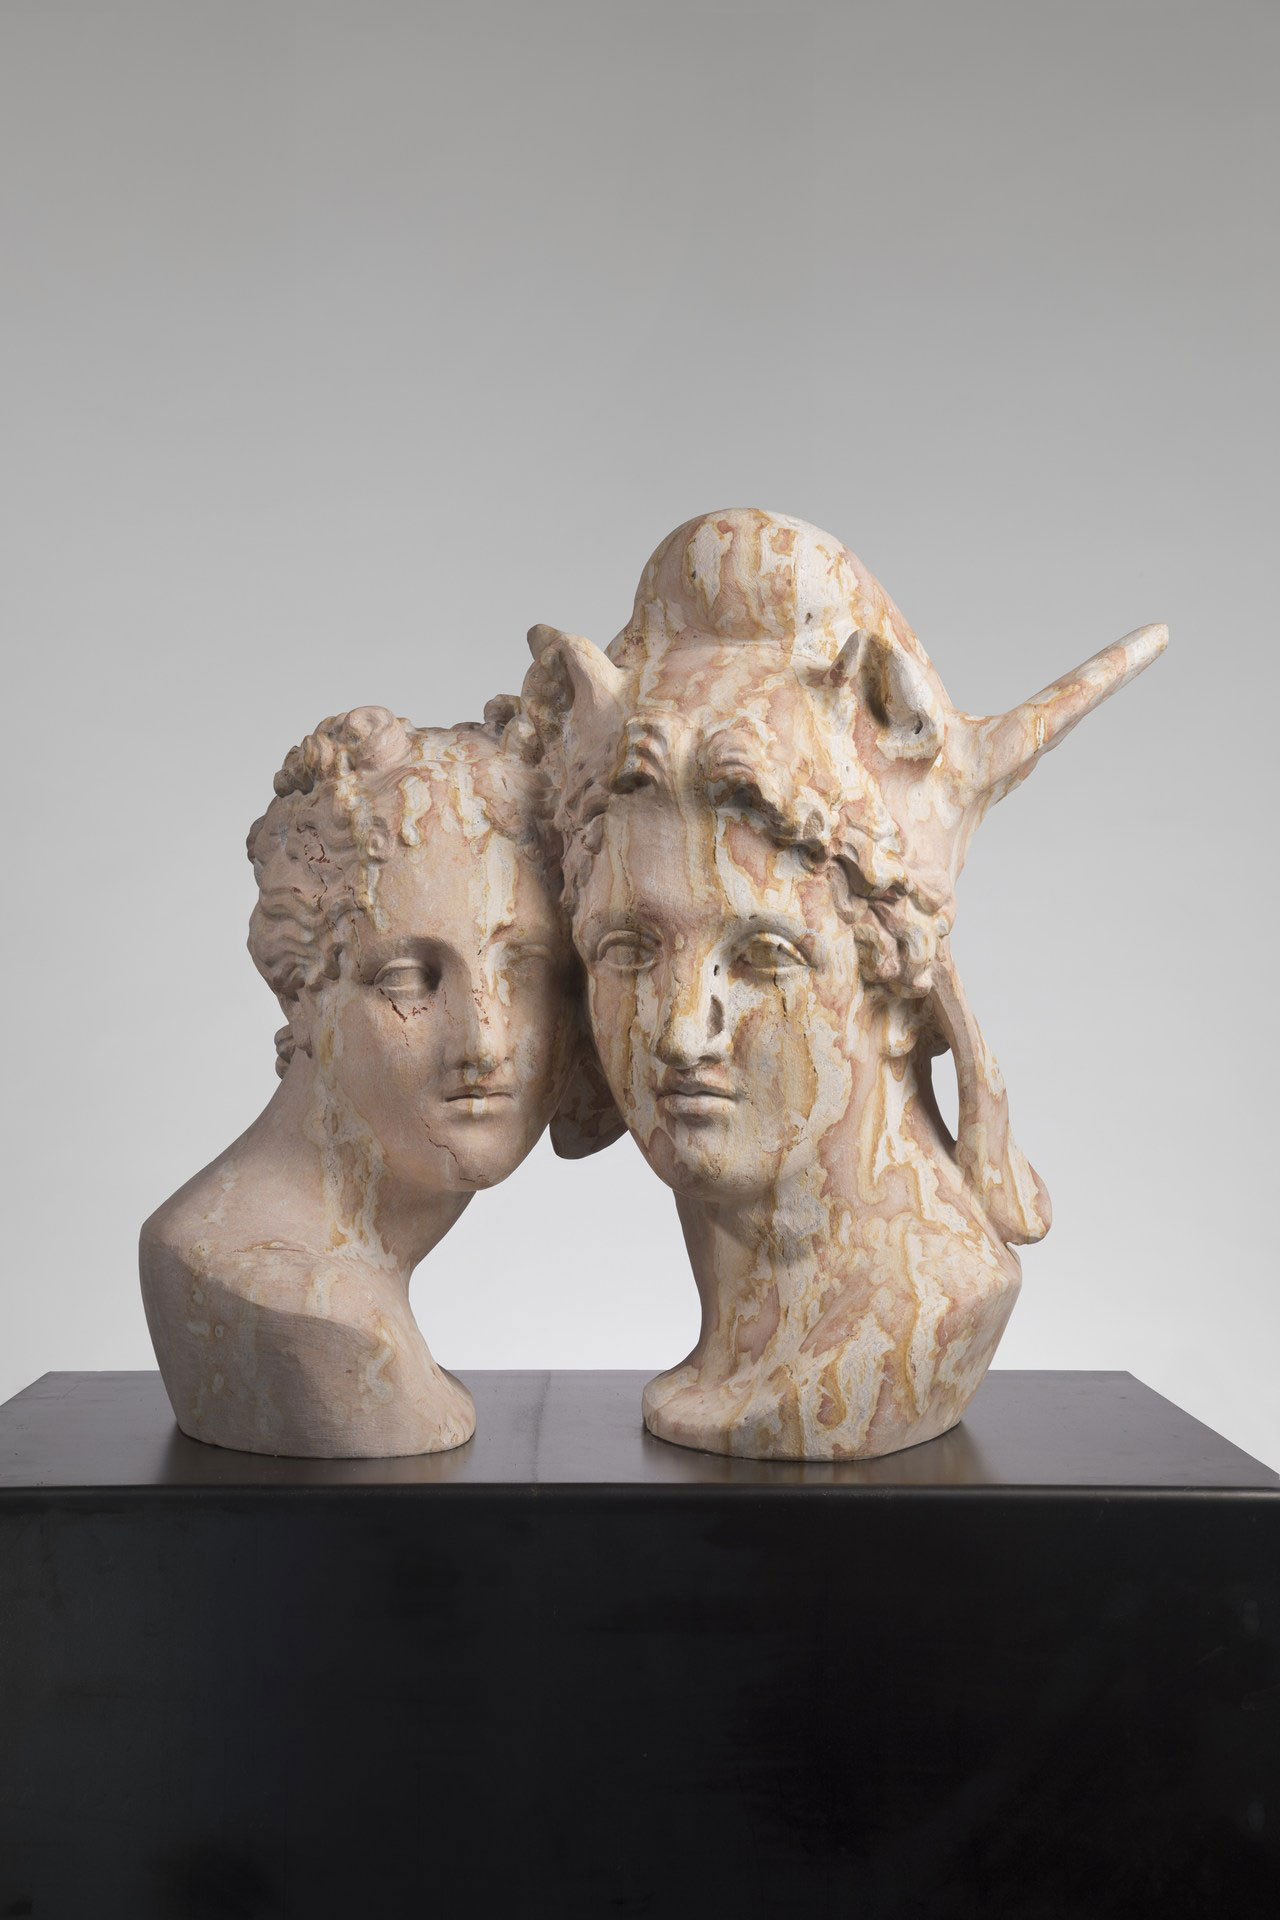 Massimiliano Pelletti, Impossible Love, 2017. Etruscan red marble, 71 x 70 x 44 cm.